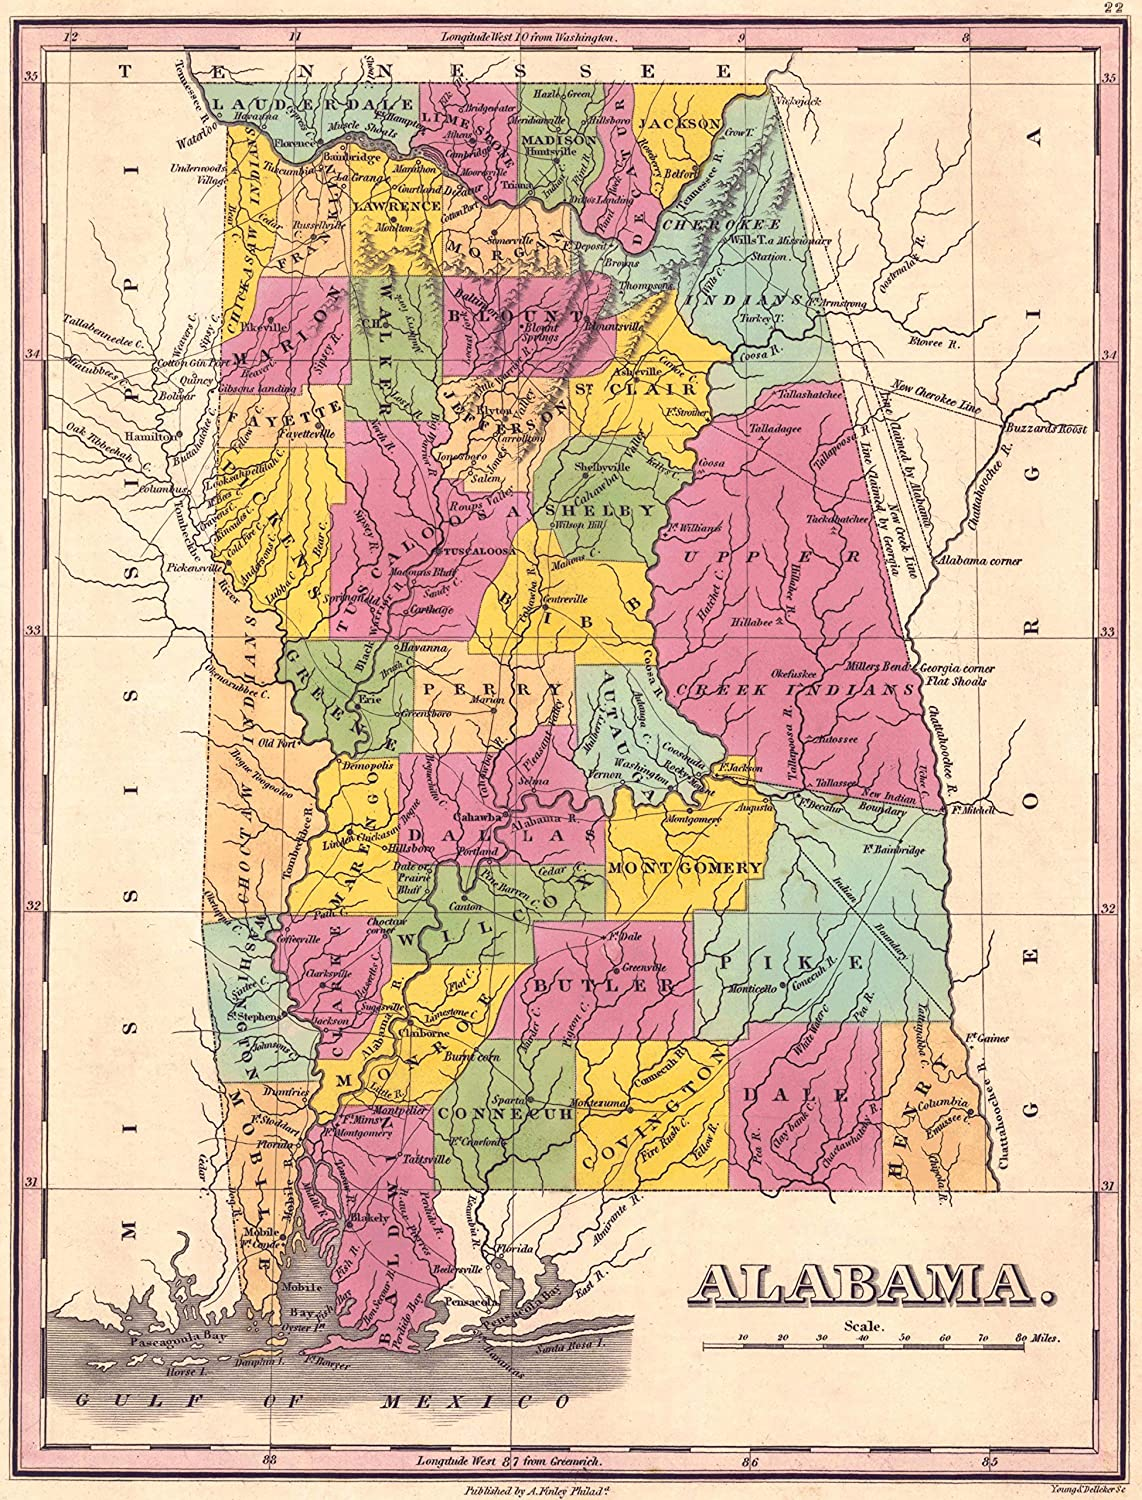 Vintage Map of Alabama Counties, 1833 - 42\